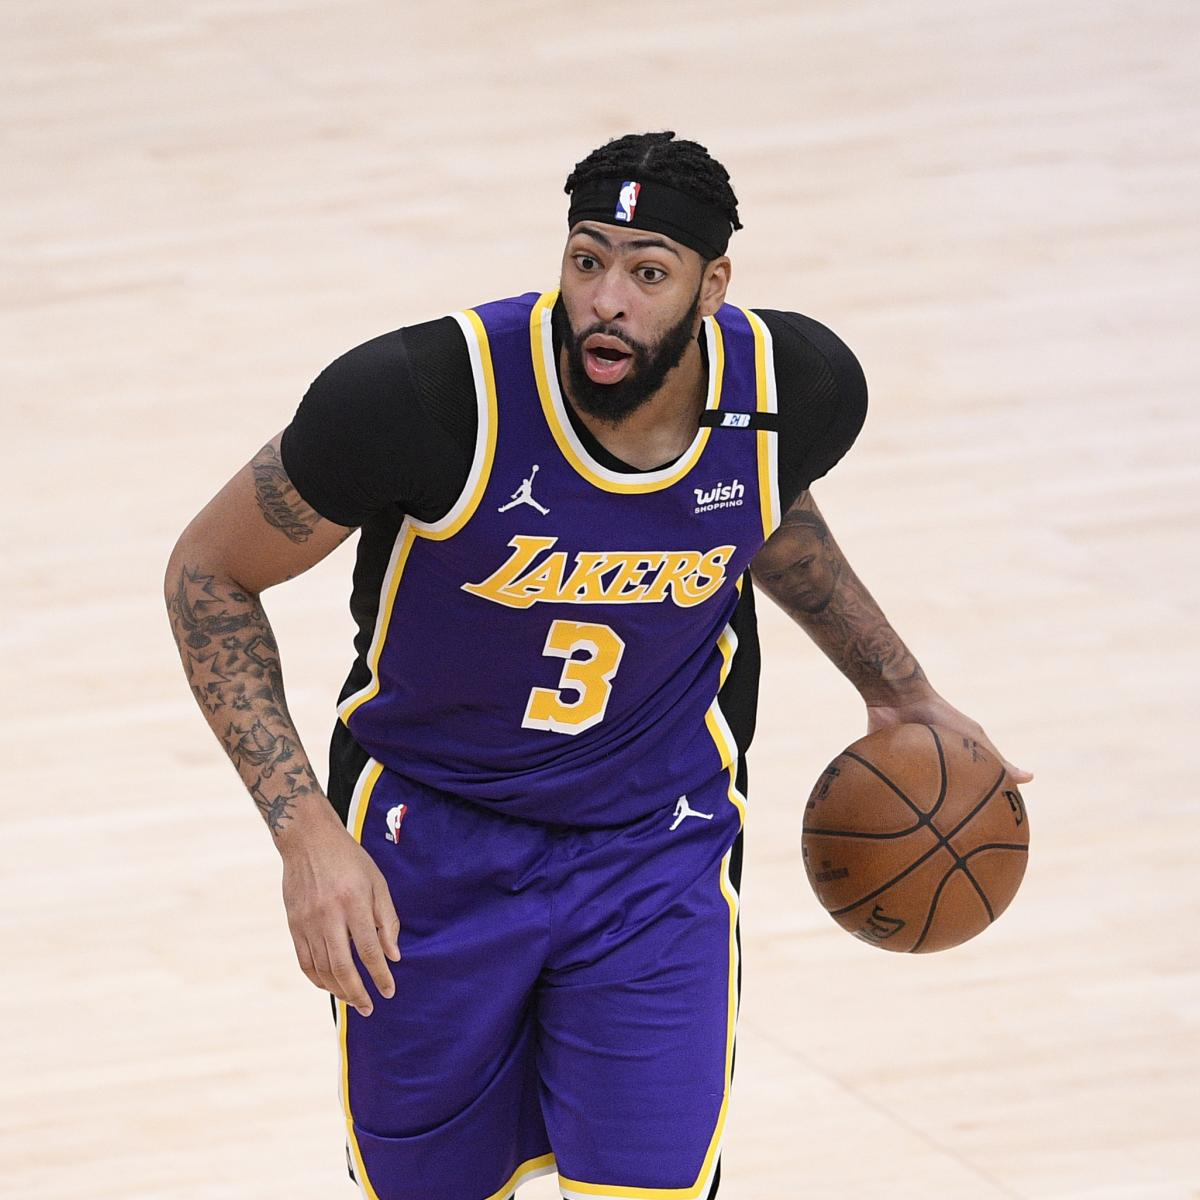 Anthony Davis Says 'The Only Way Is Up' for Lakers After Loss to Raptors thumbnail